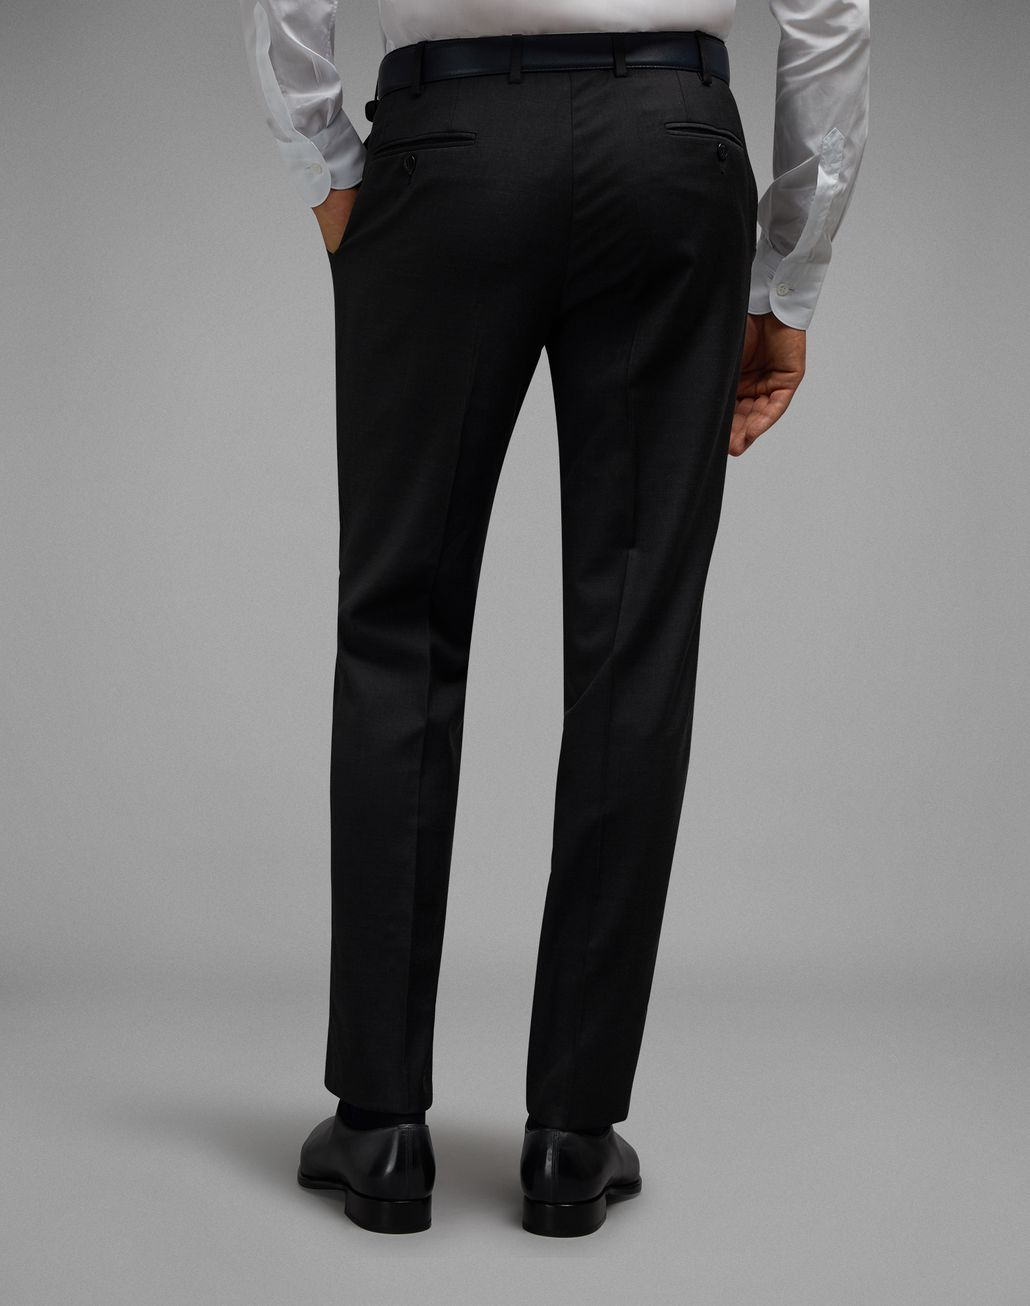 BRIONI 'Essential' Grey Tigullio Trousers Trousers Man d